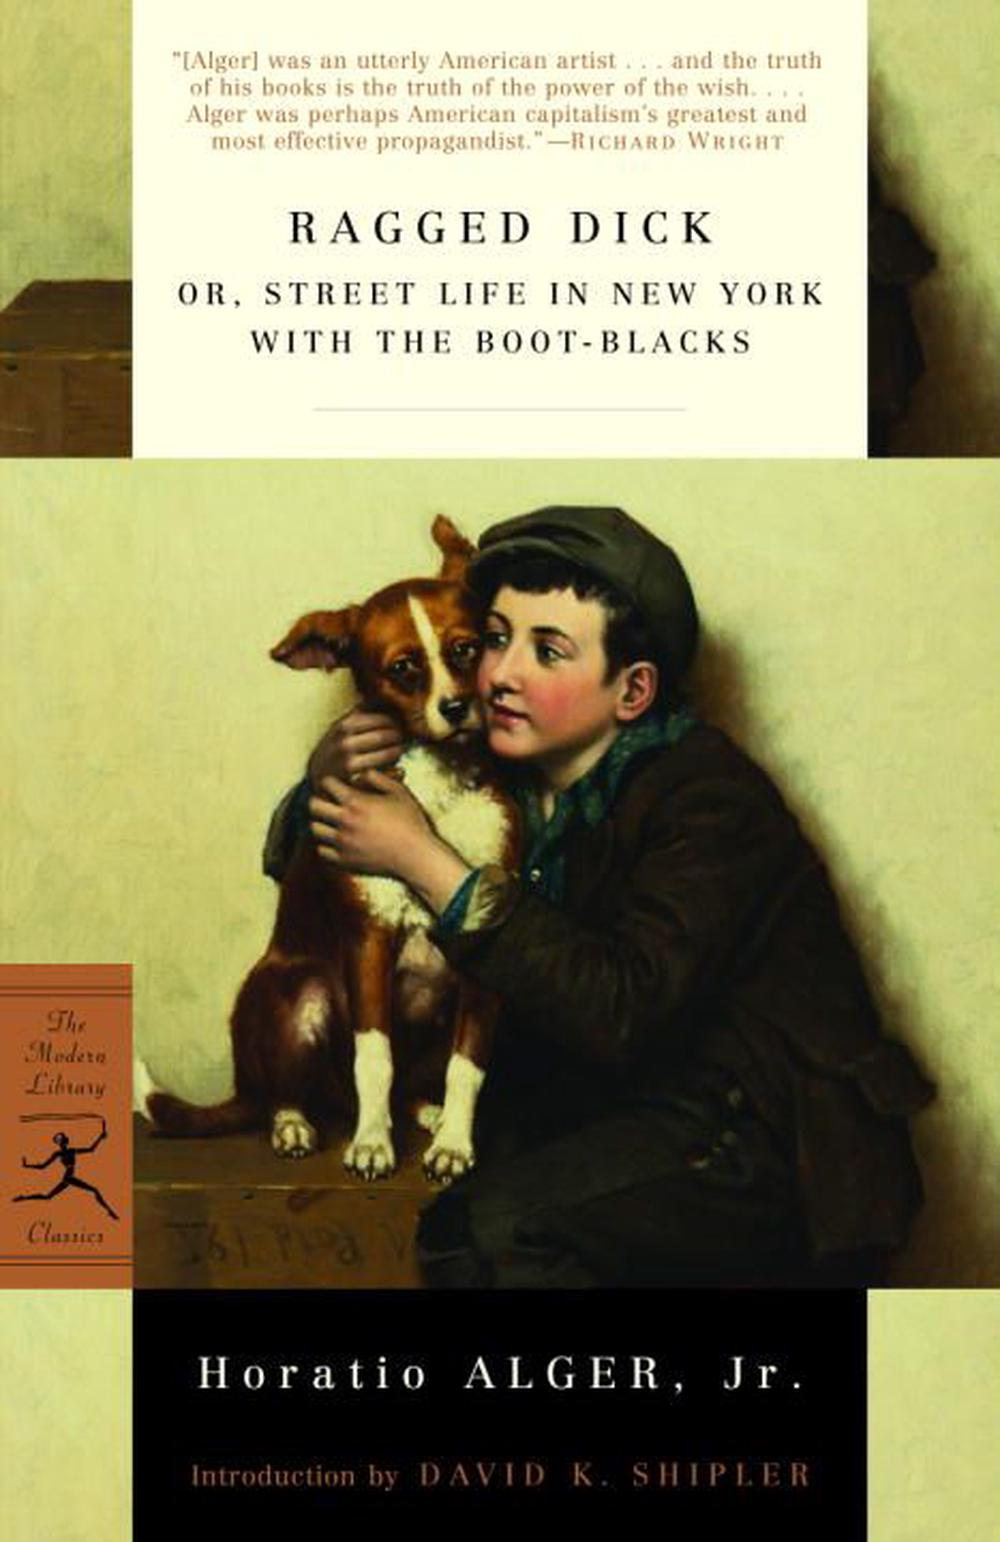 Ragged Dick: Or, Street Life in New York with the Boot-Blacks